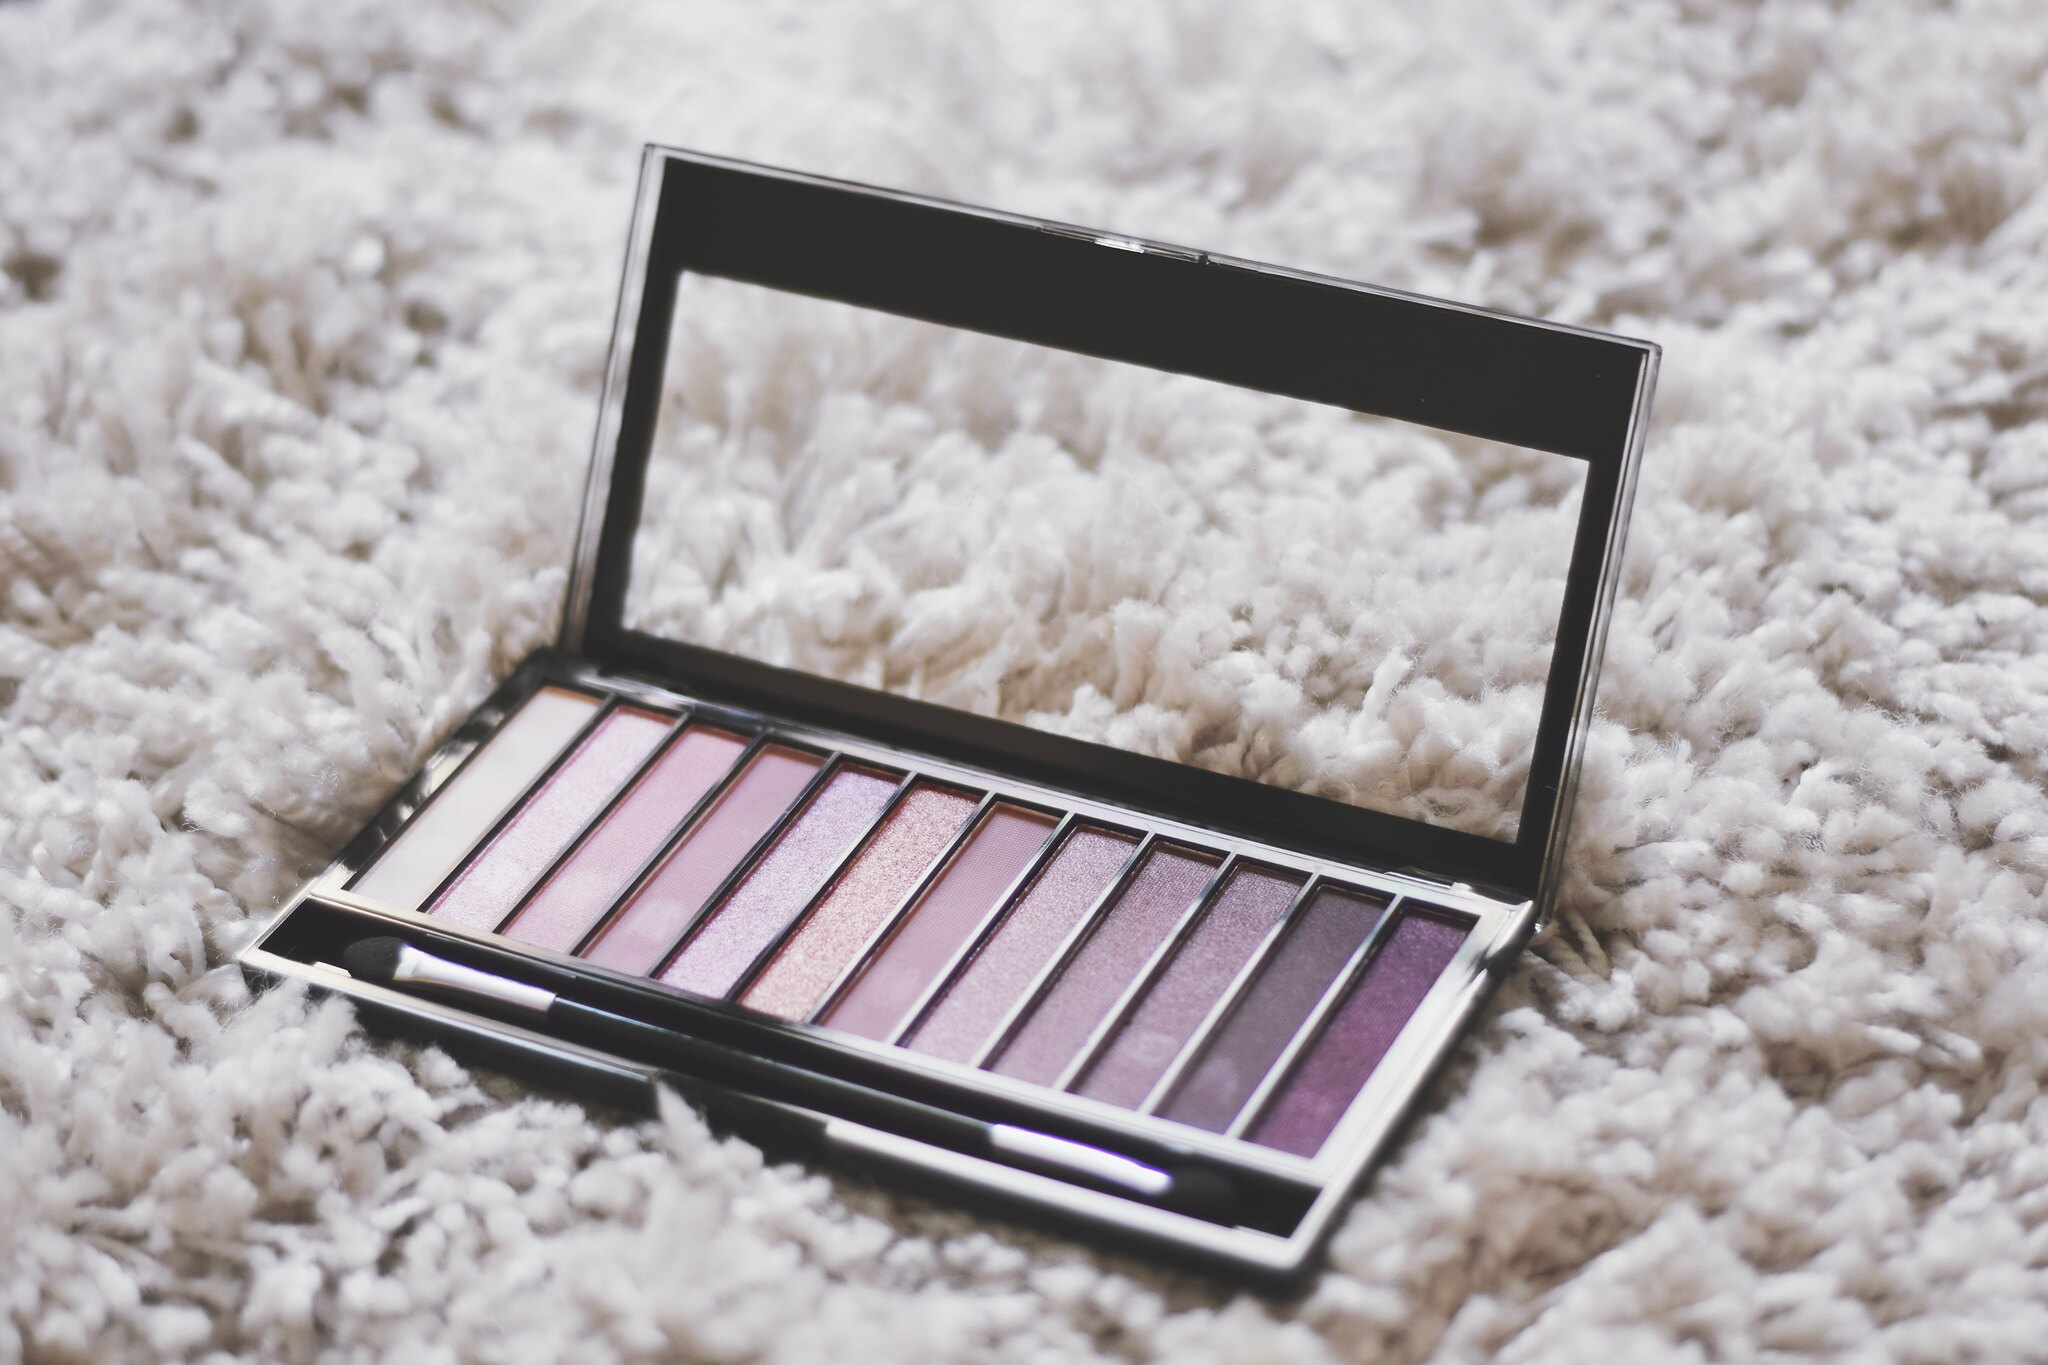 Make Up Revolution Iconic 3 Palette Urban Decay Naked 3